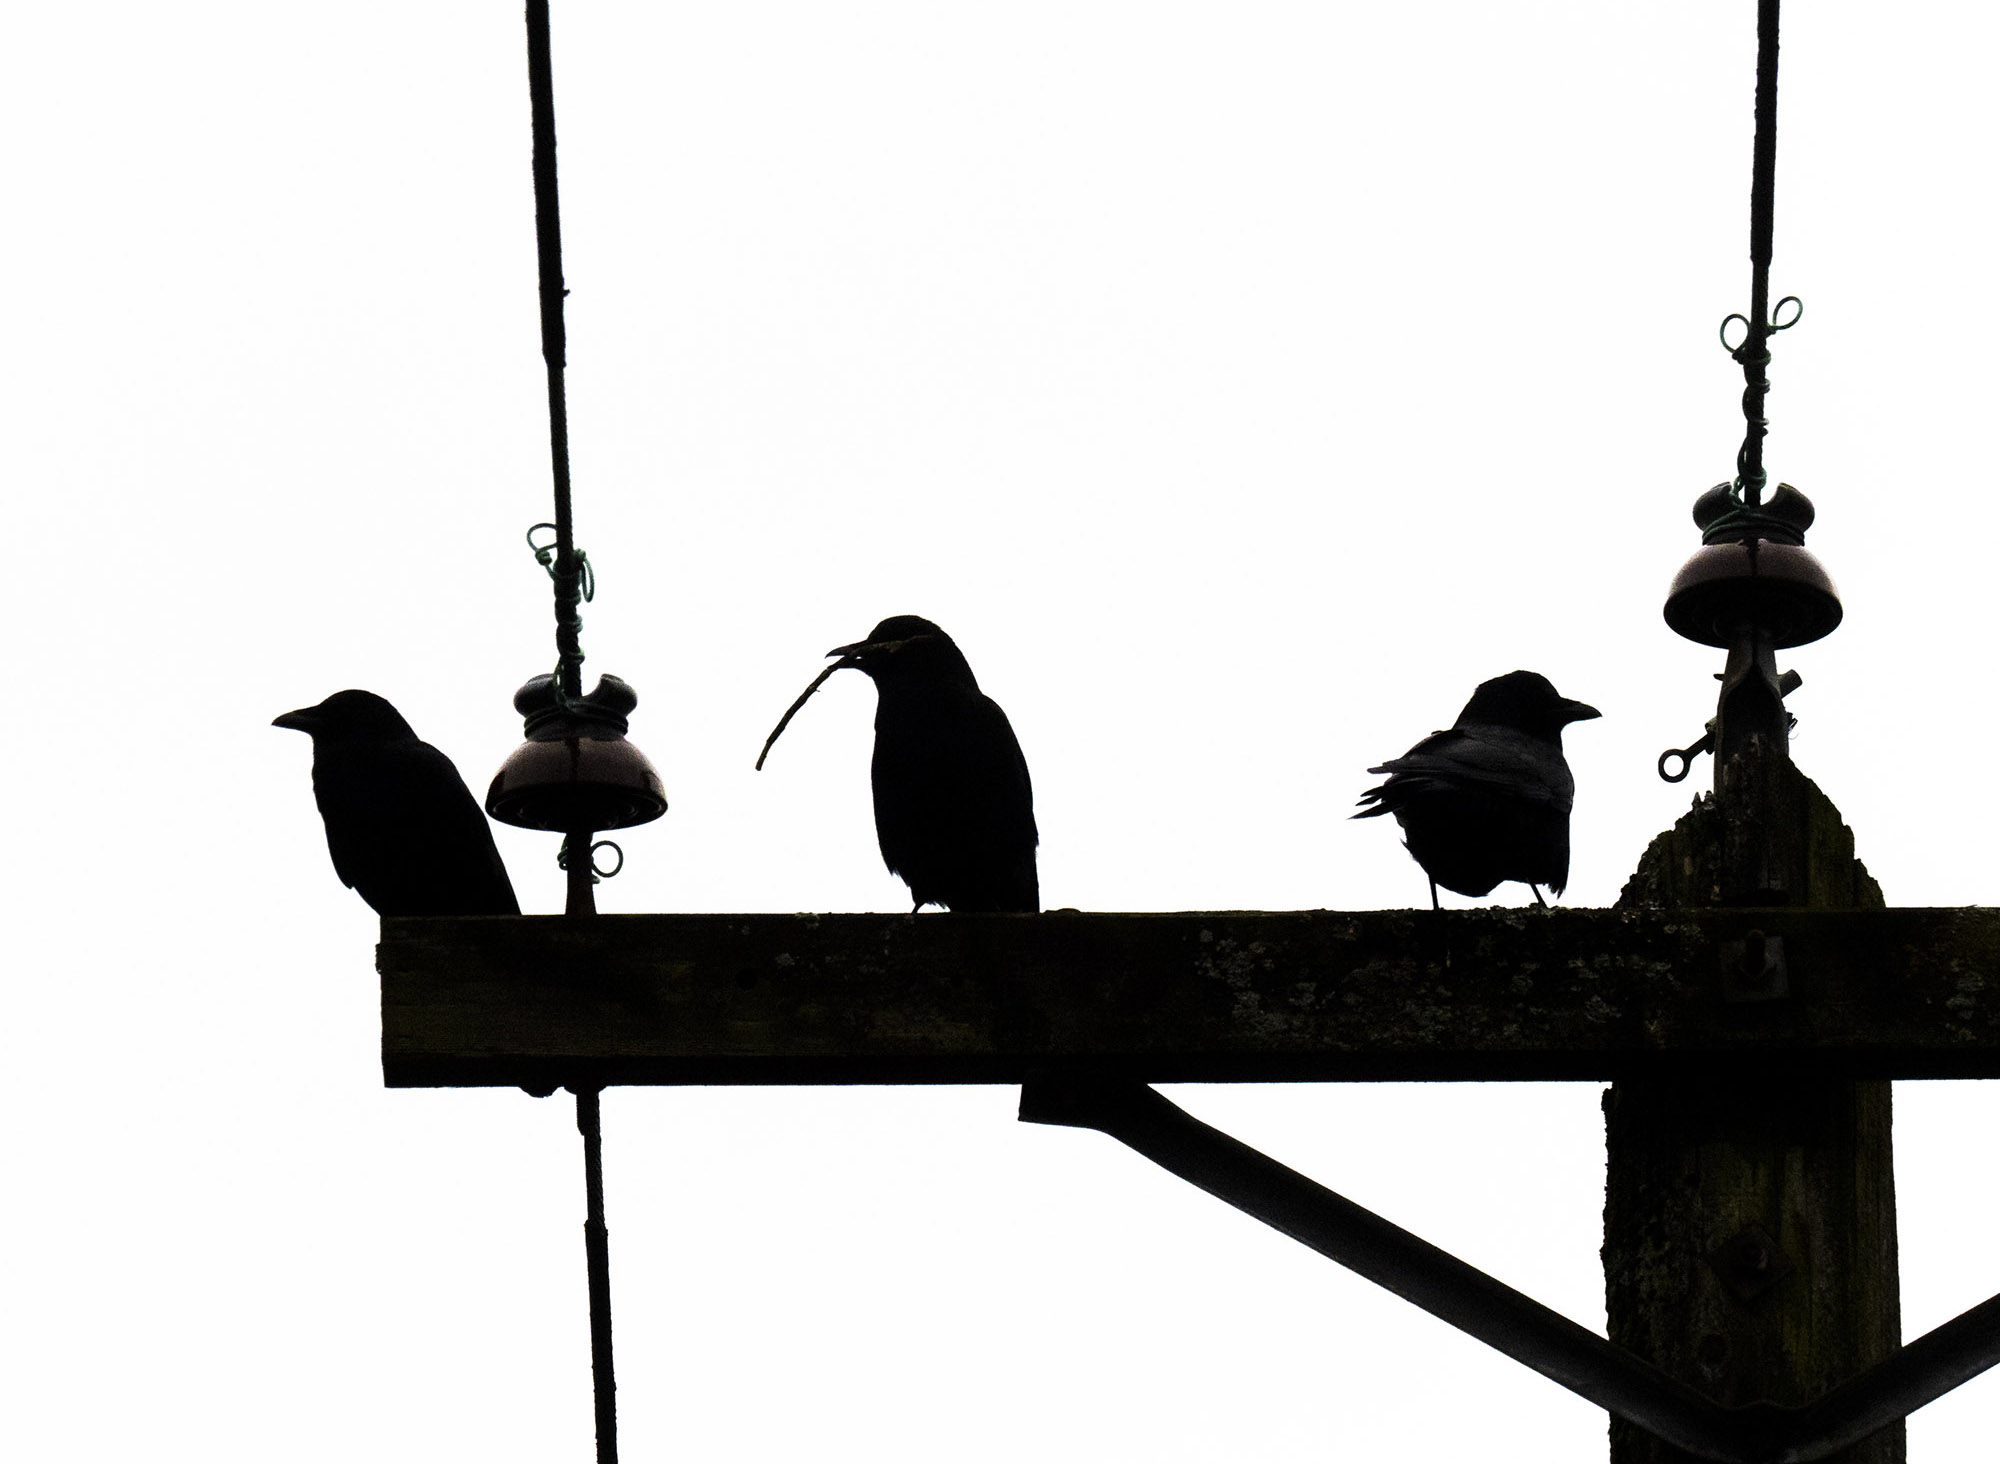 Three crows silhouette